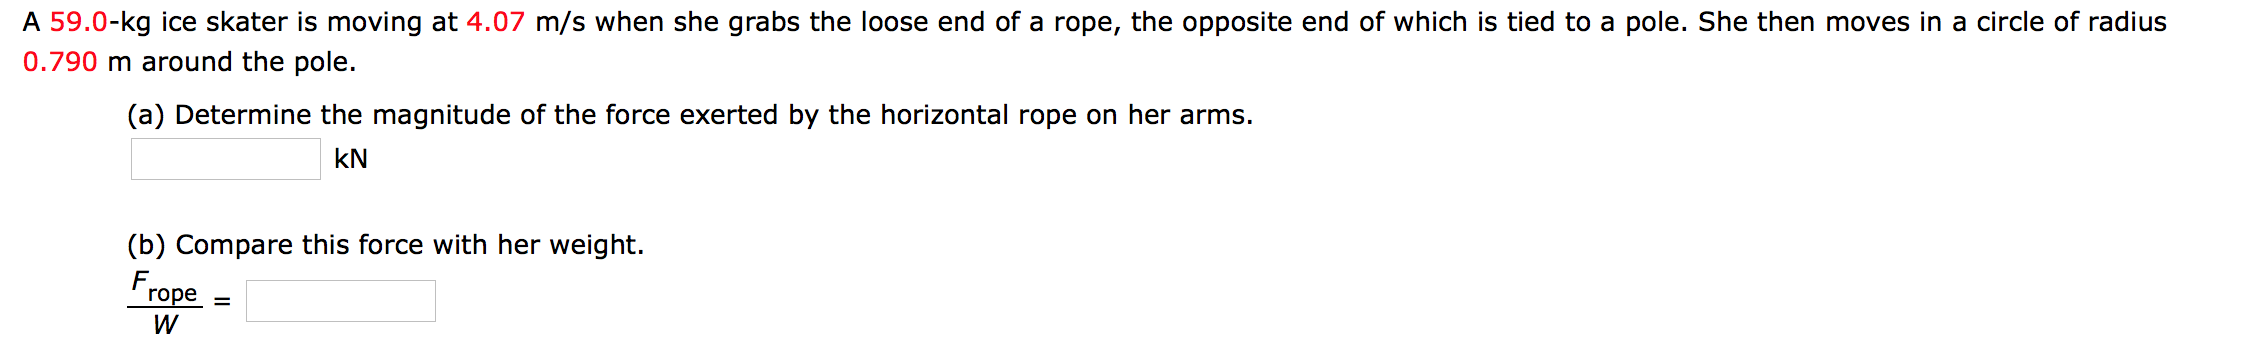 A 59.0-kg ice skater is moving at 4.07 m/s when she grabs the loose end of a rope, the opposite end of which is tied to a pole. She then moves in a circle of radius 0.790 m around the pole. (a) Determine the magnitude of the force exerted by the horizontal rope on her arms. kN (b) Compare this force with her weight. Frope = W